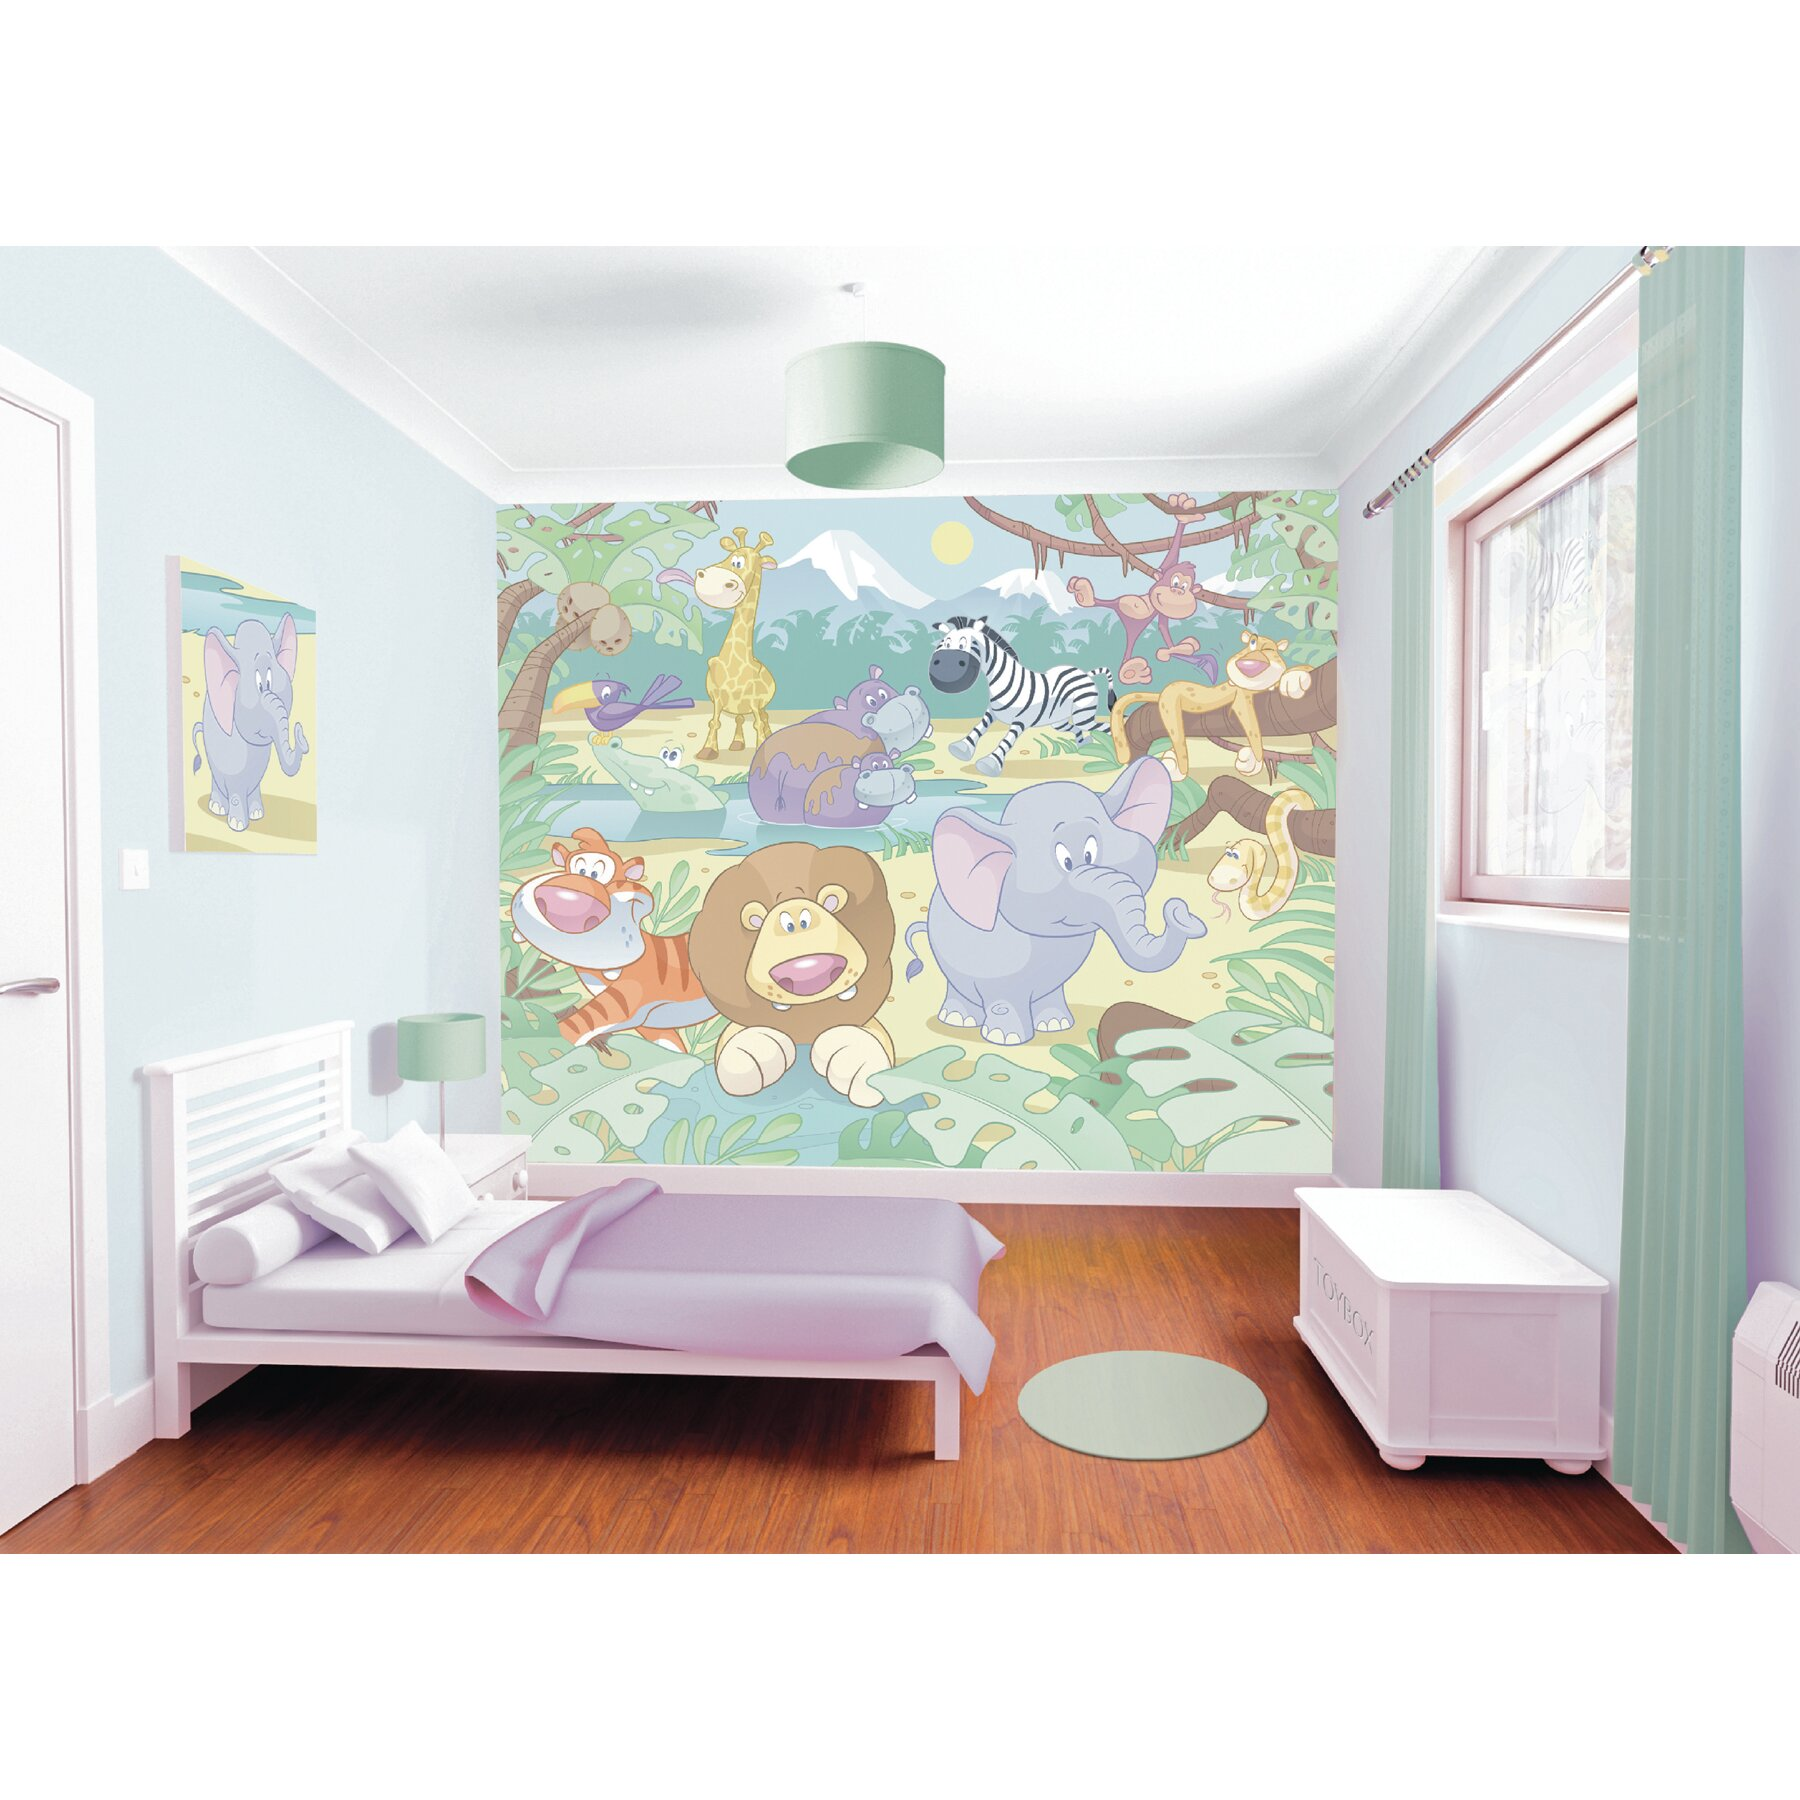 Wallpops walltastic wall art baby jungle safari wall for Baby jungle safari wall mural